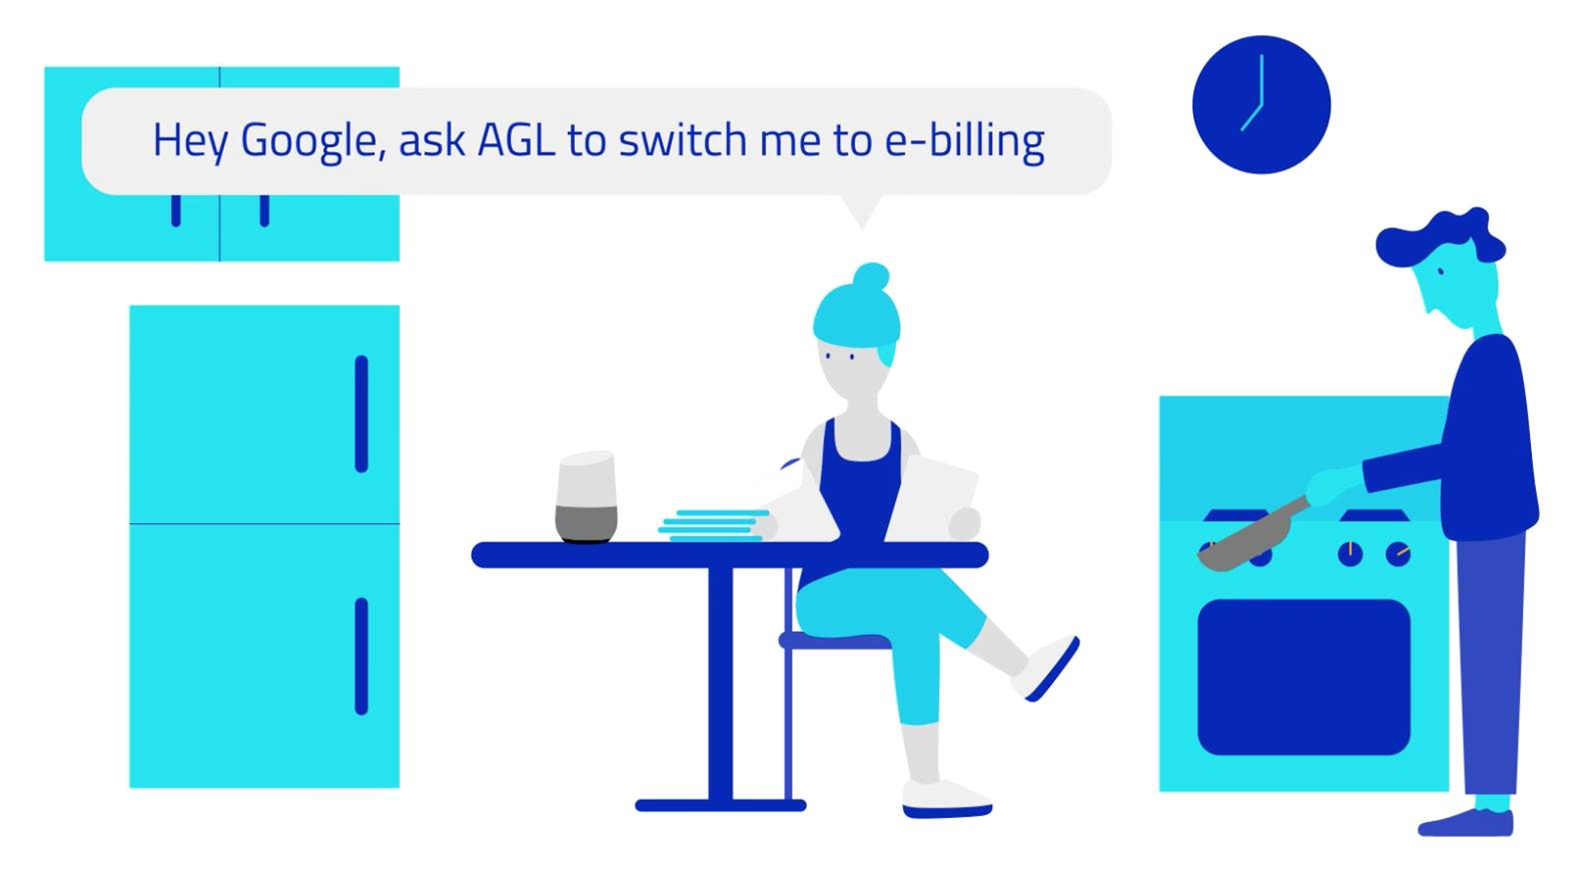 AGL allows bill management via Google Home